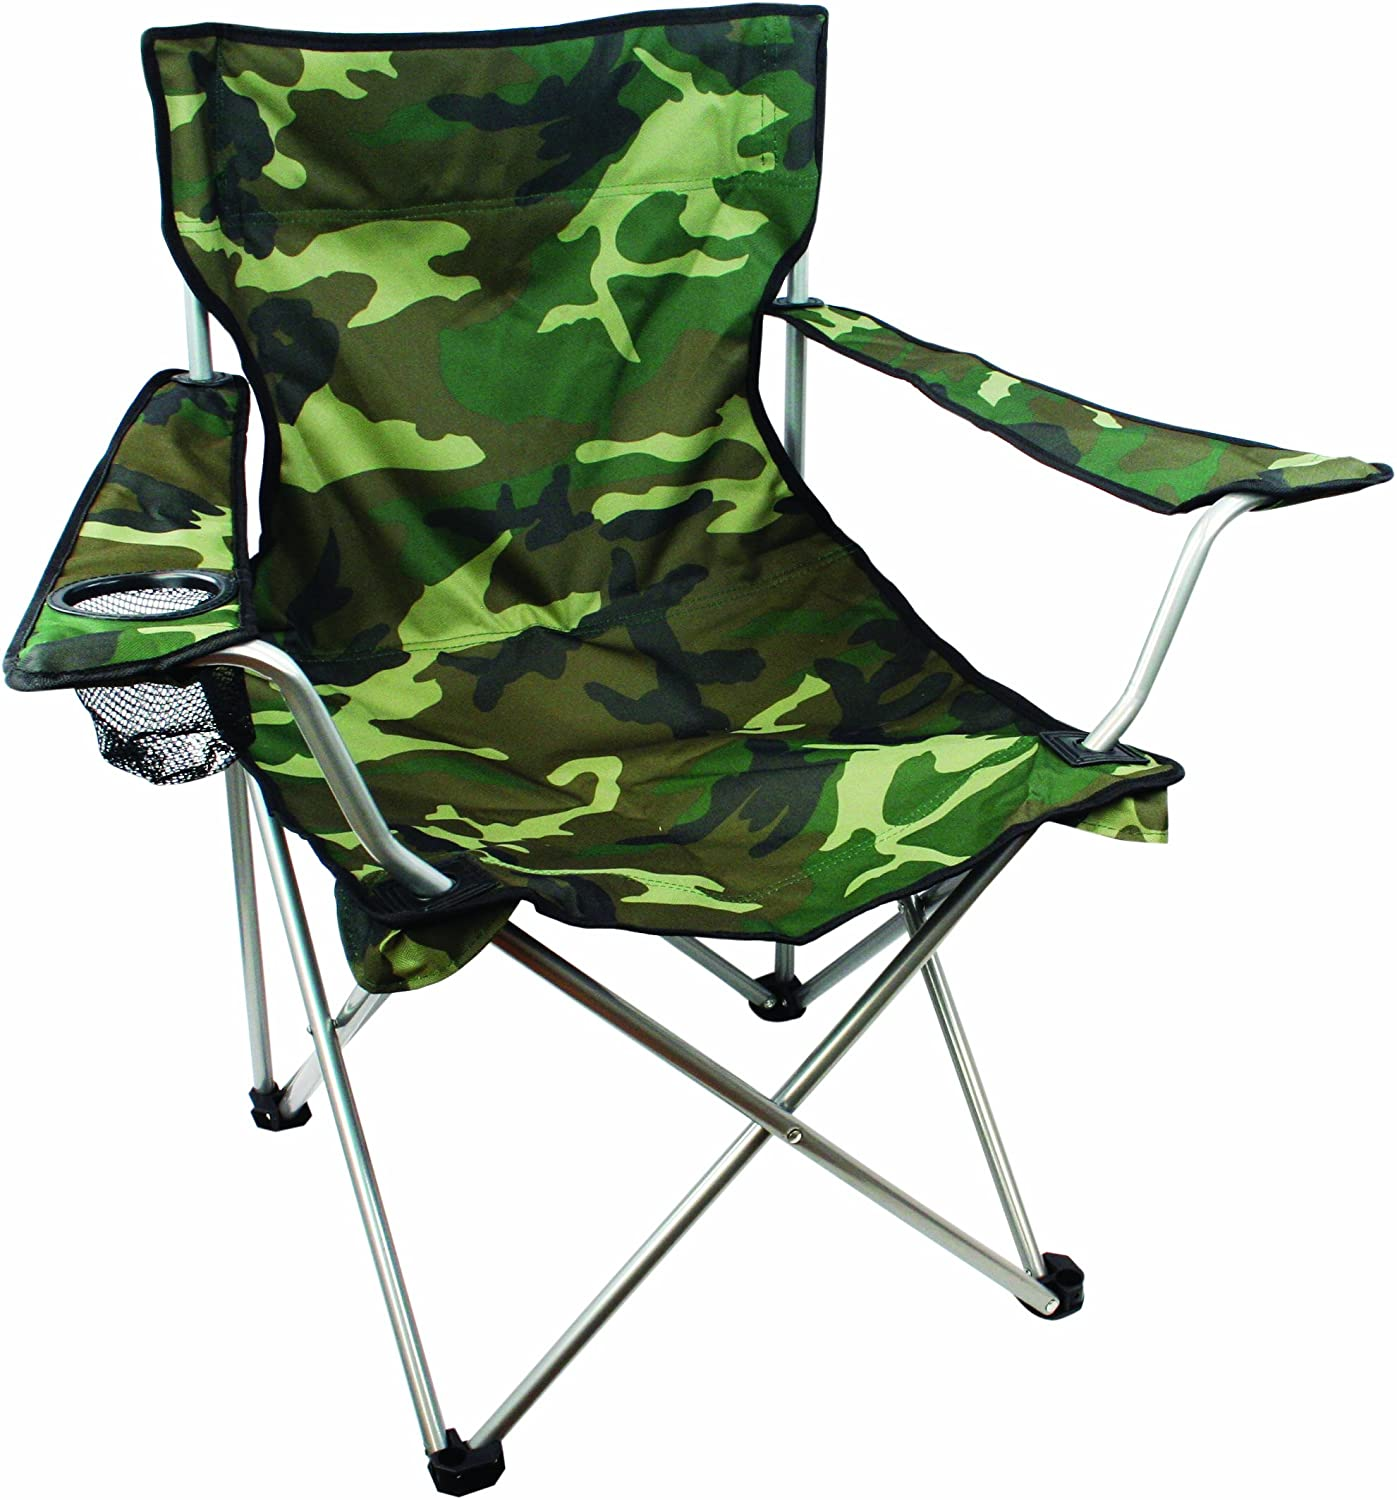 Highlander Folding Camp Chair Lightweight Popular and Highly